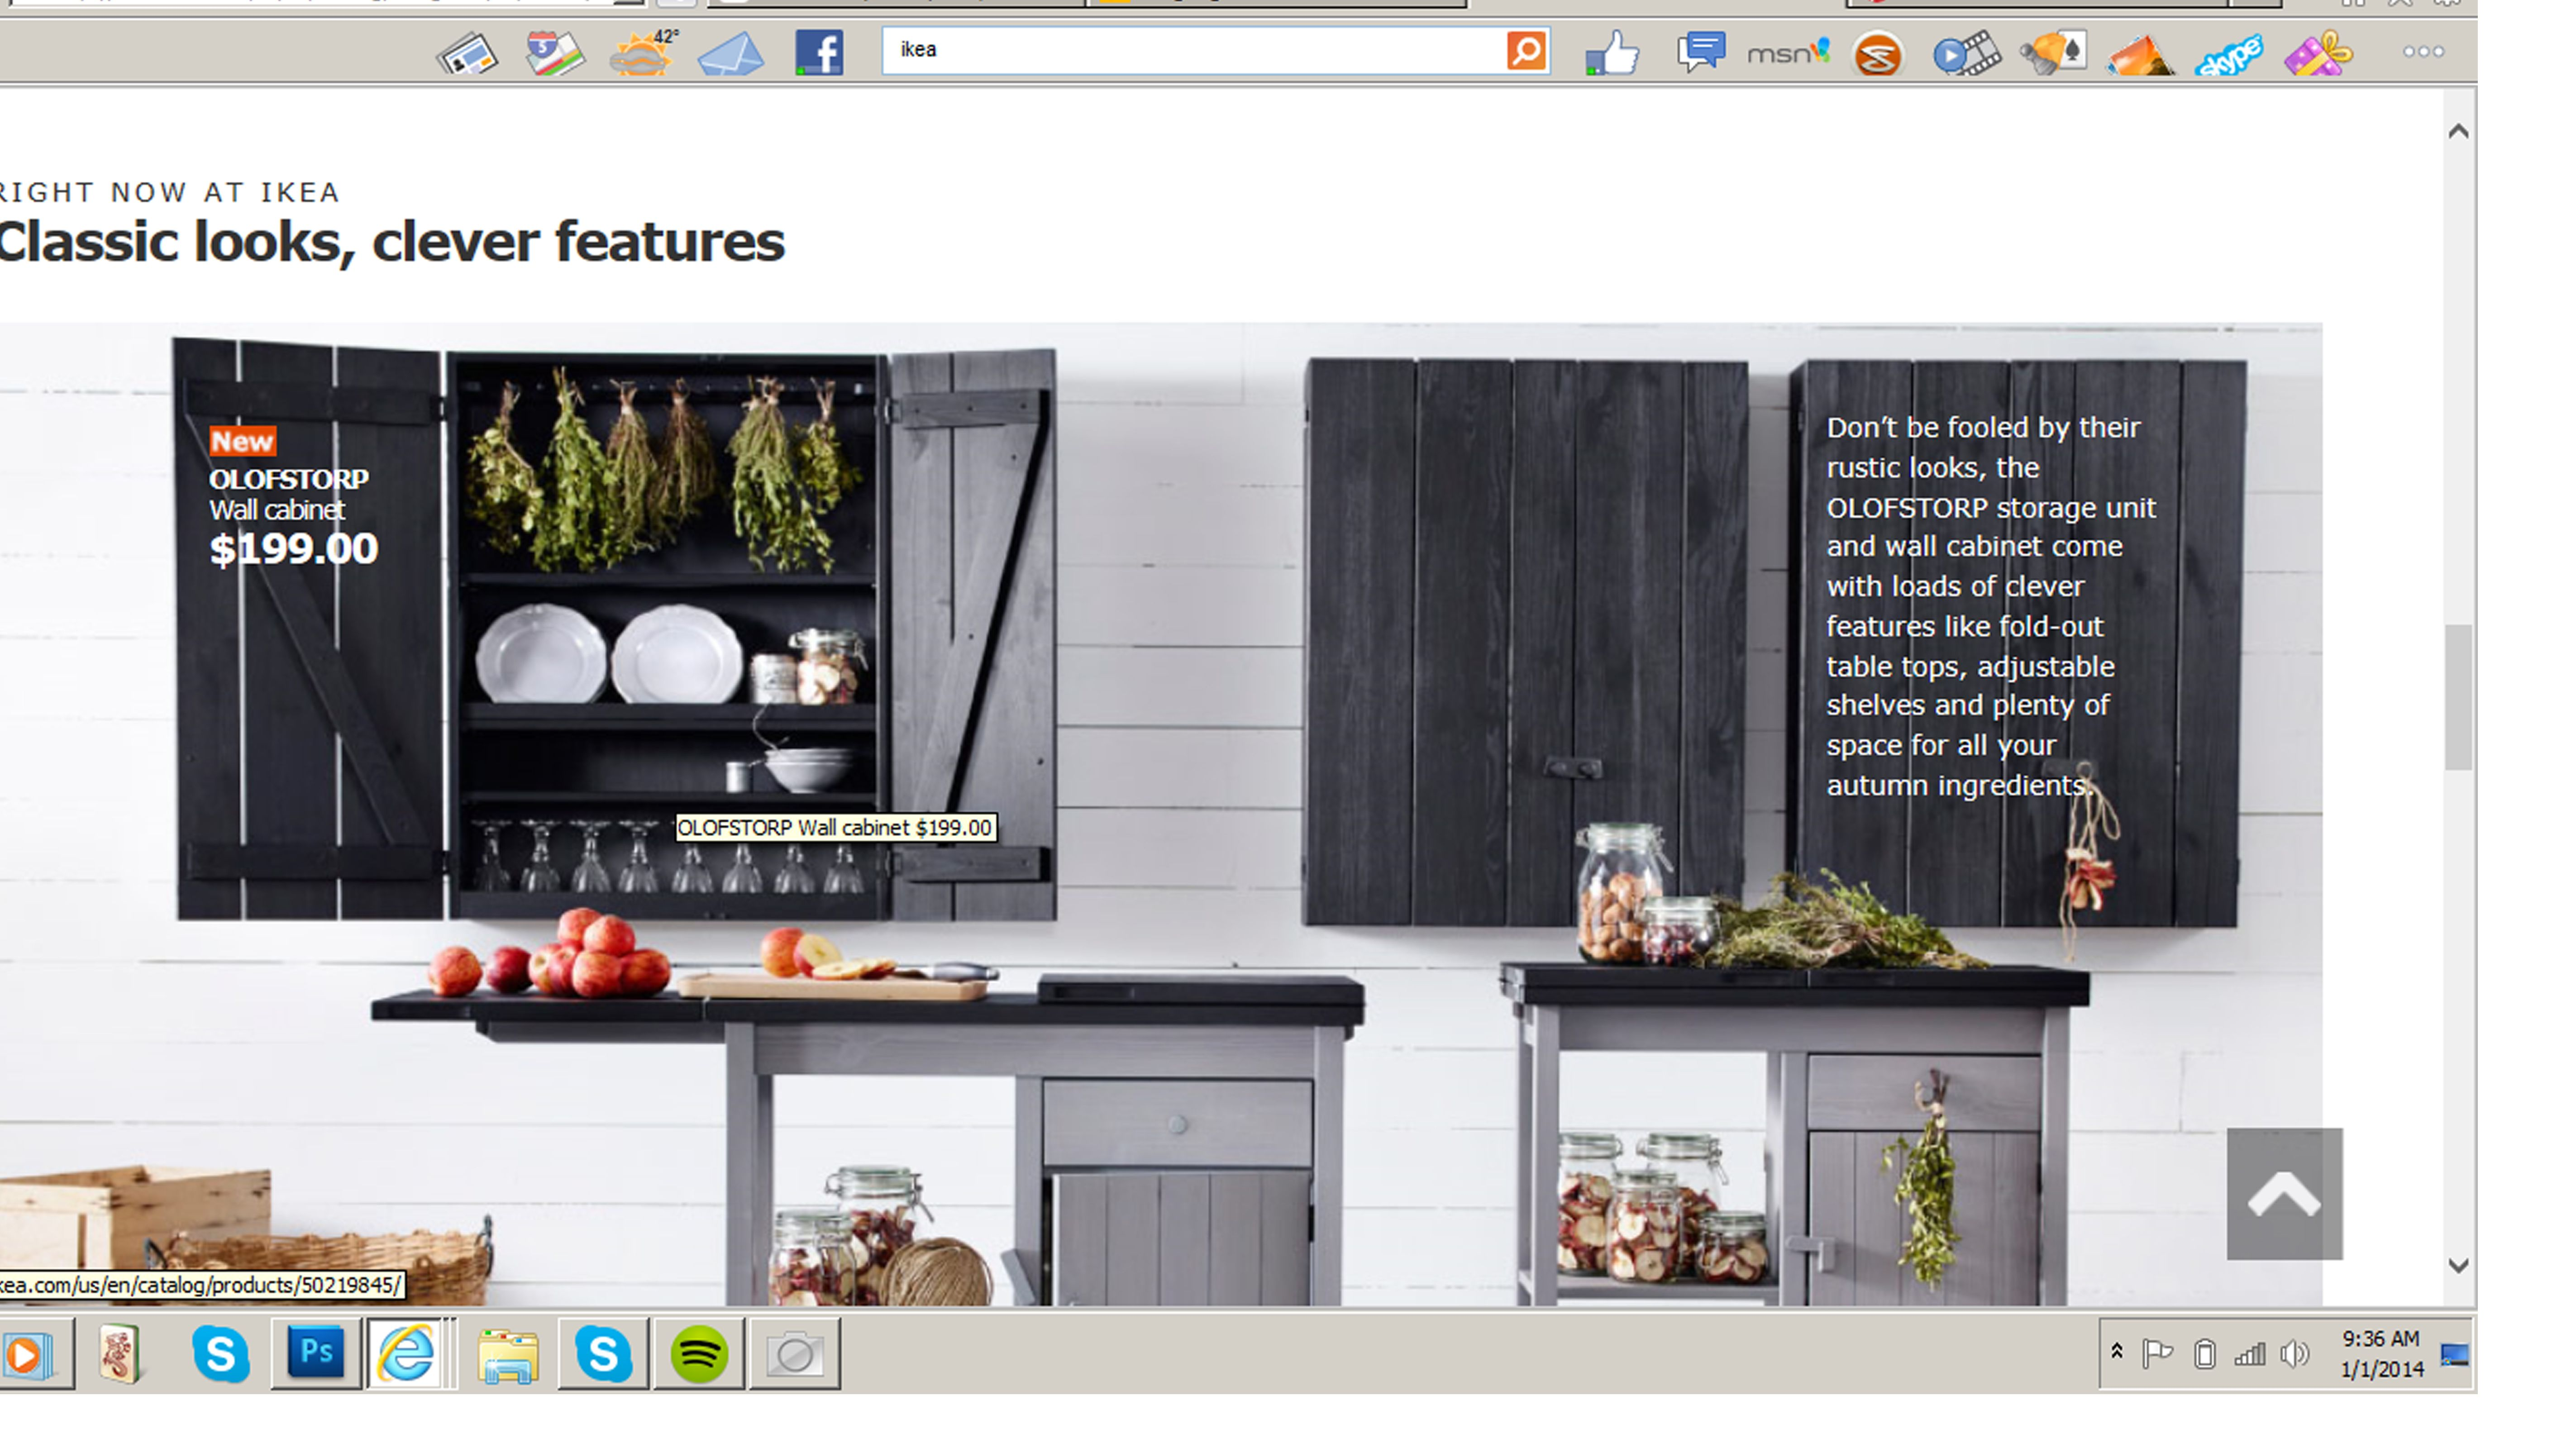 indea for rustic doors for kitchen on Feng shui